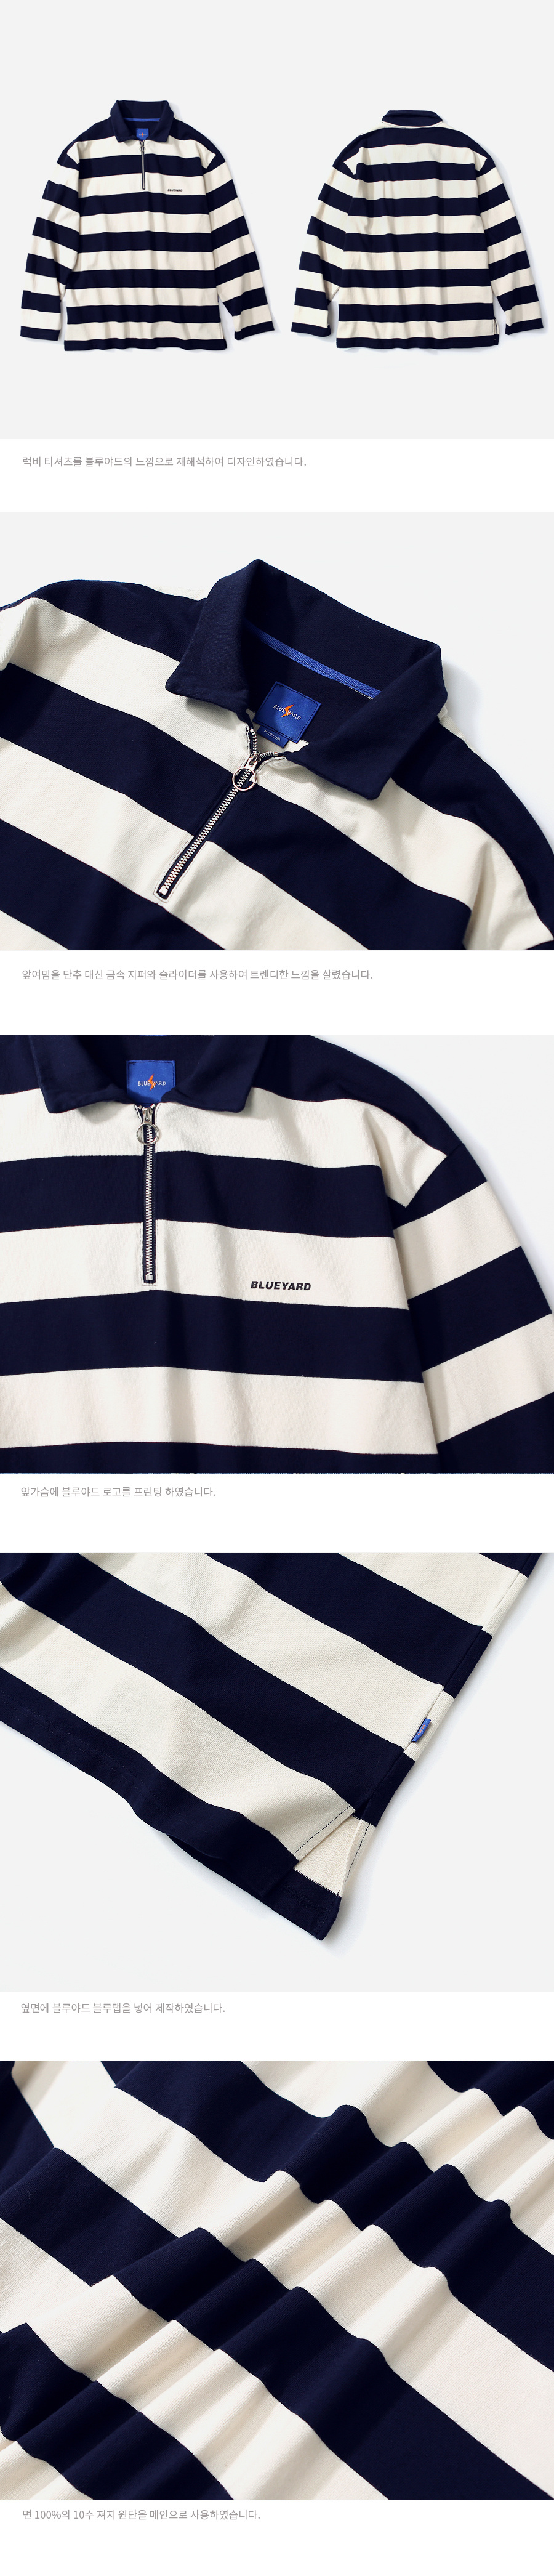 블루야드(BLUE YARD) STRIPE HALF ZIPUP LONG SLEEVE NAVY/WHITE